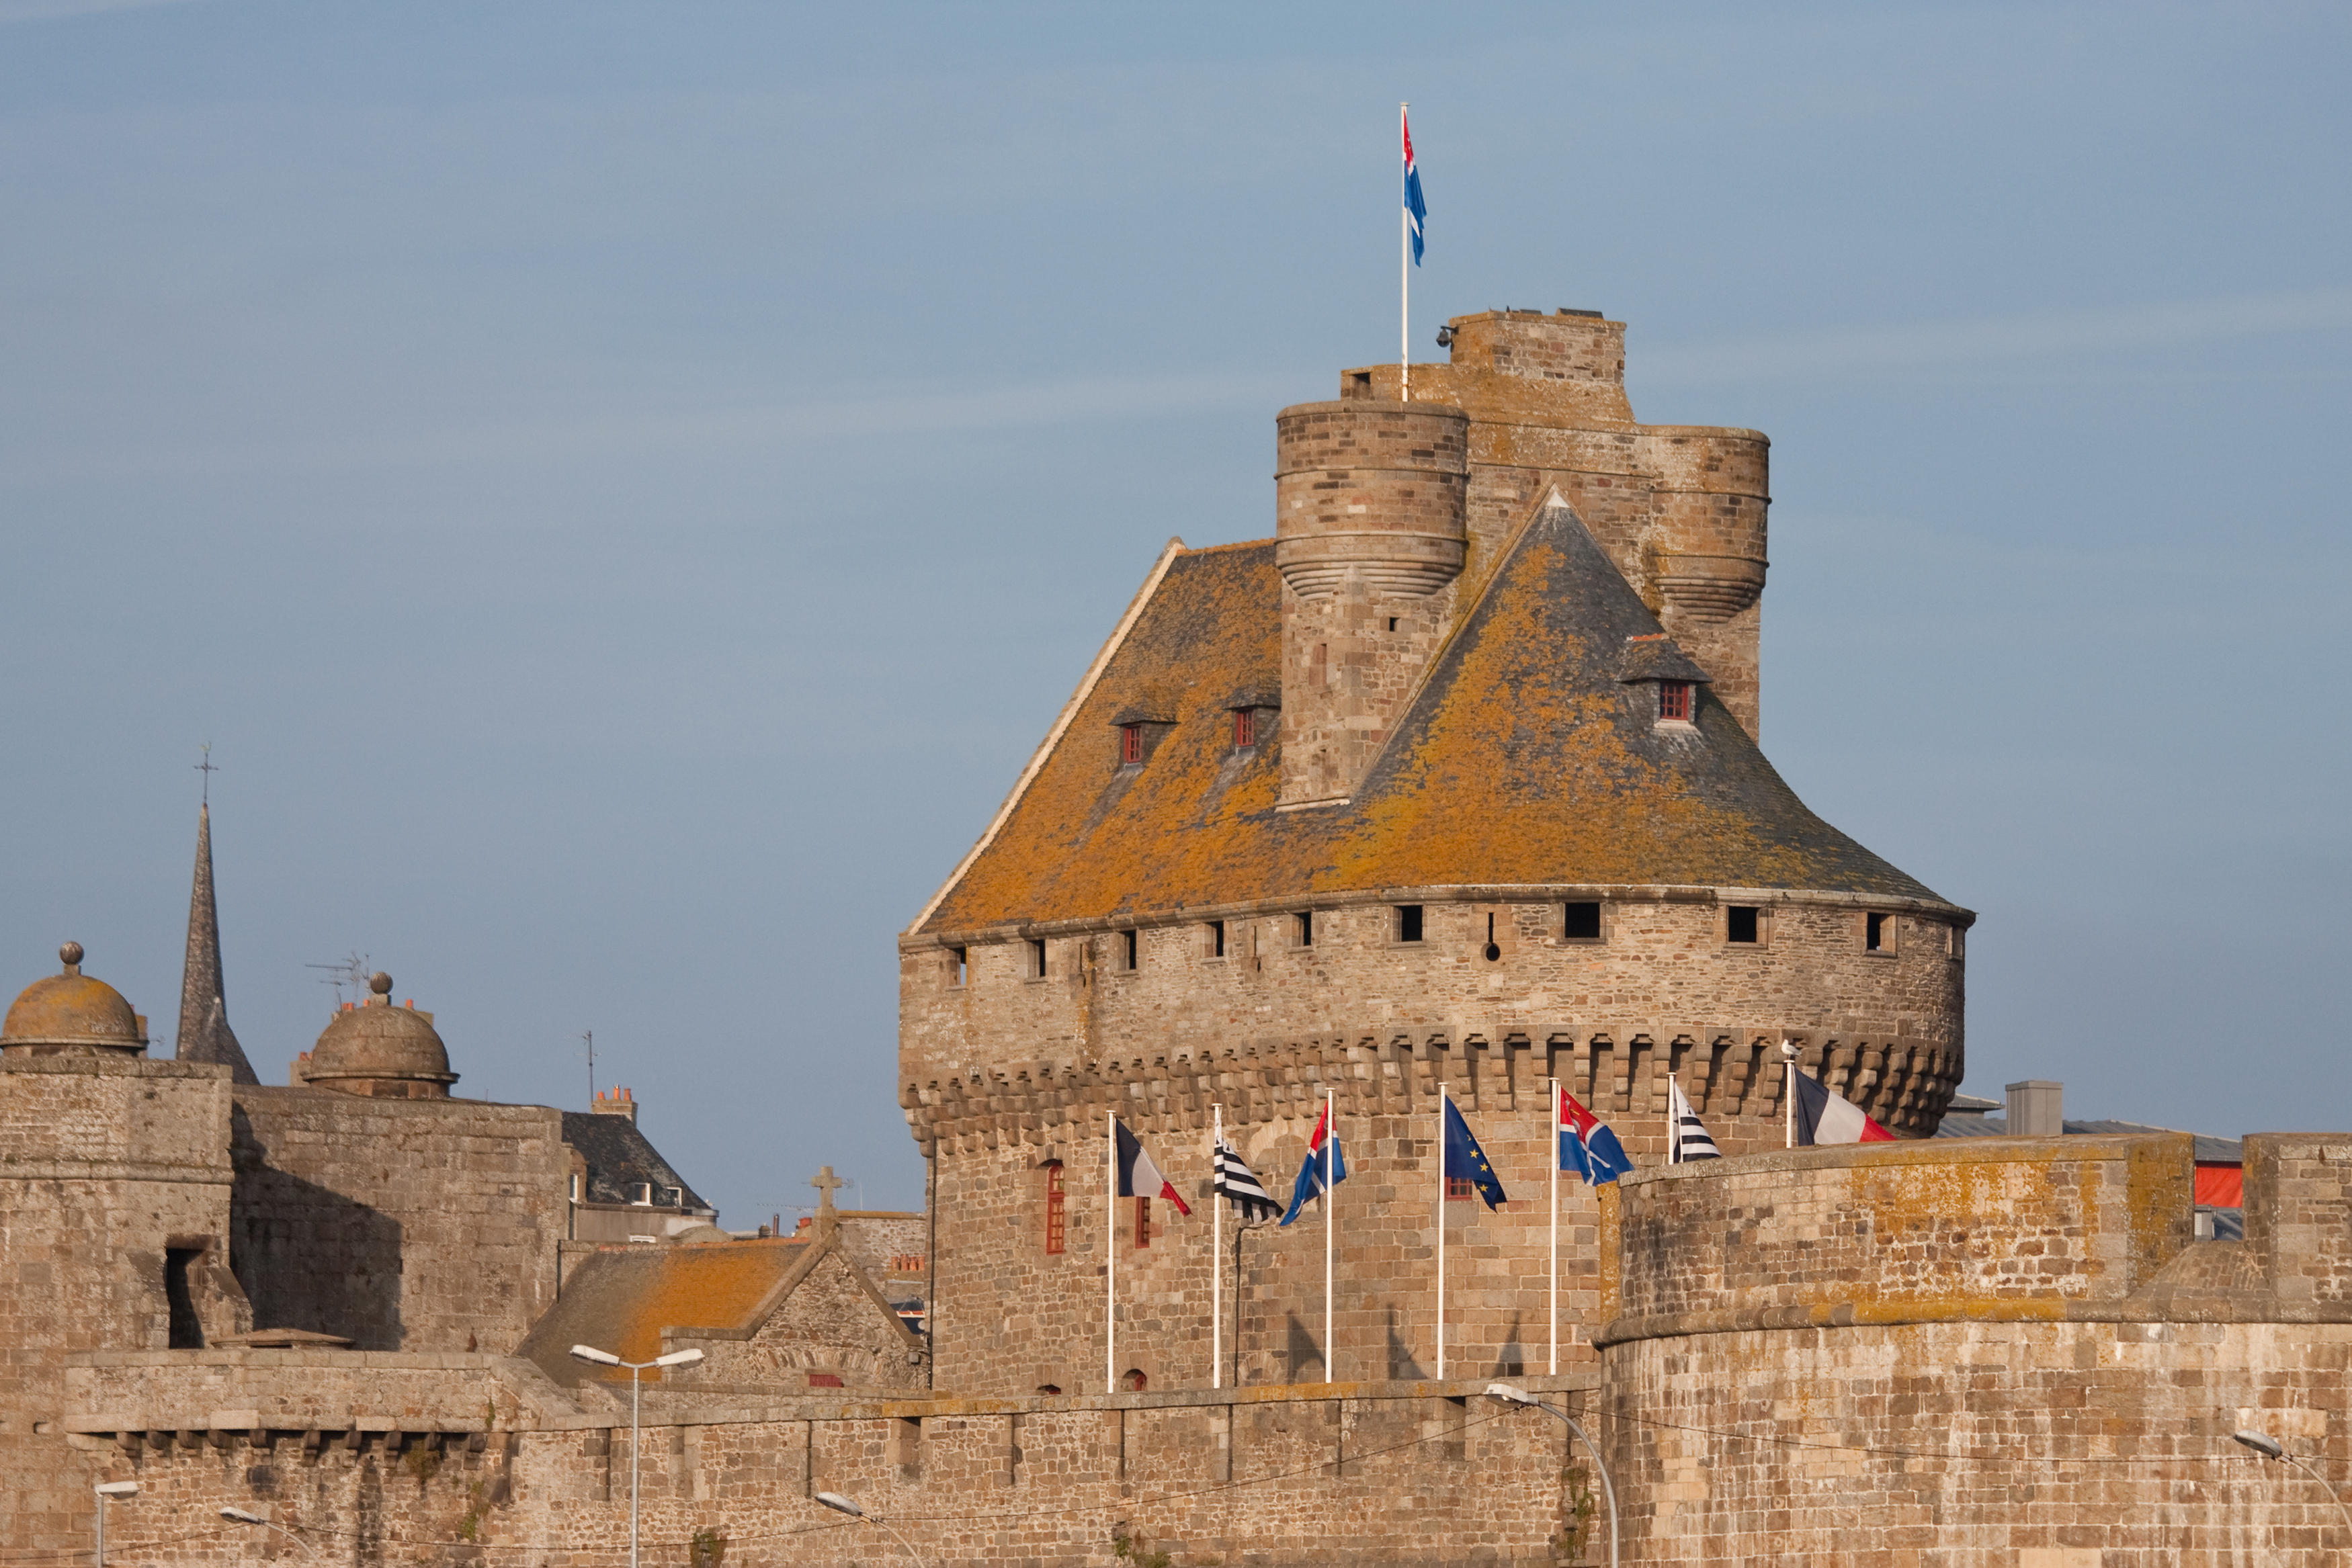 The castle of the fortified city of Saint-Malo, Brittany, France.